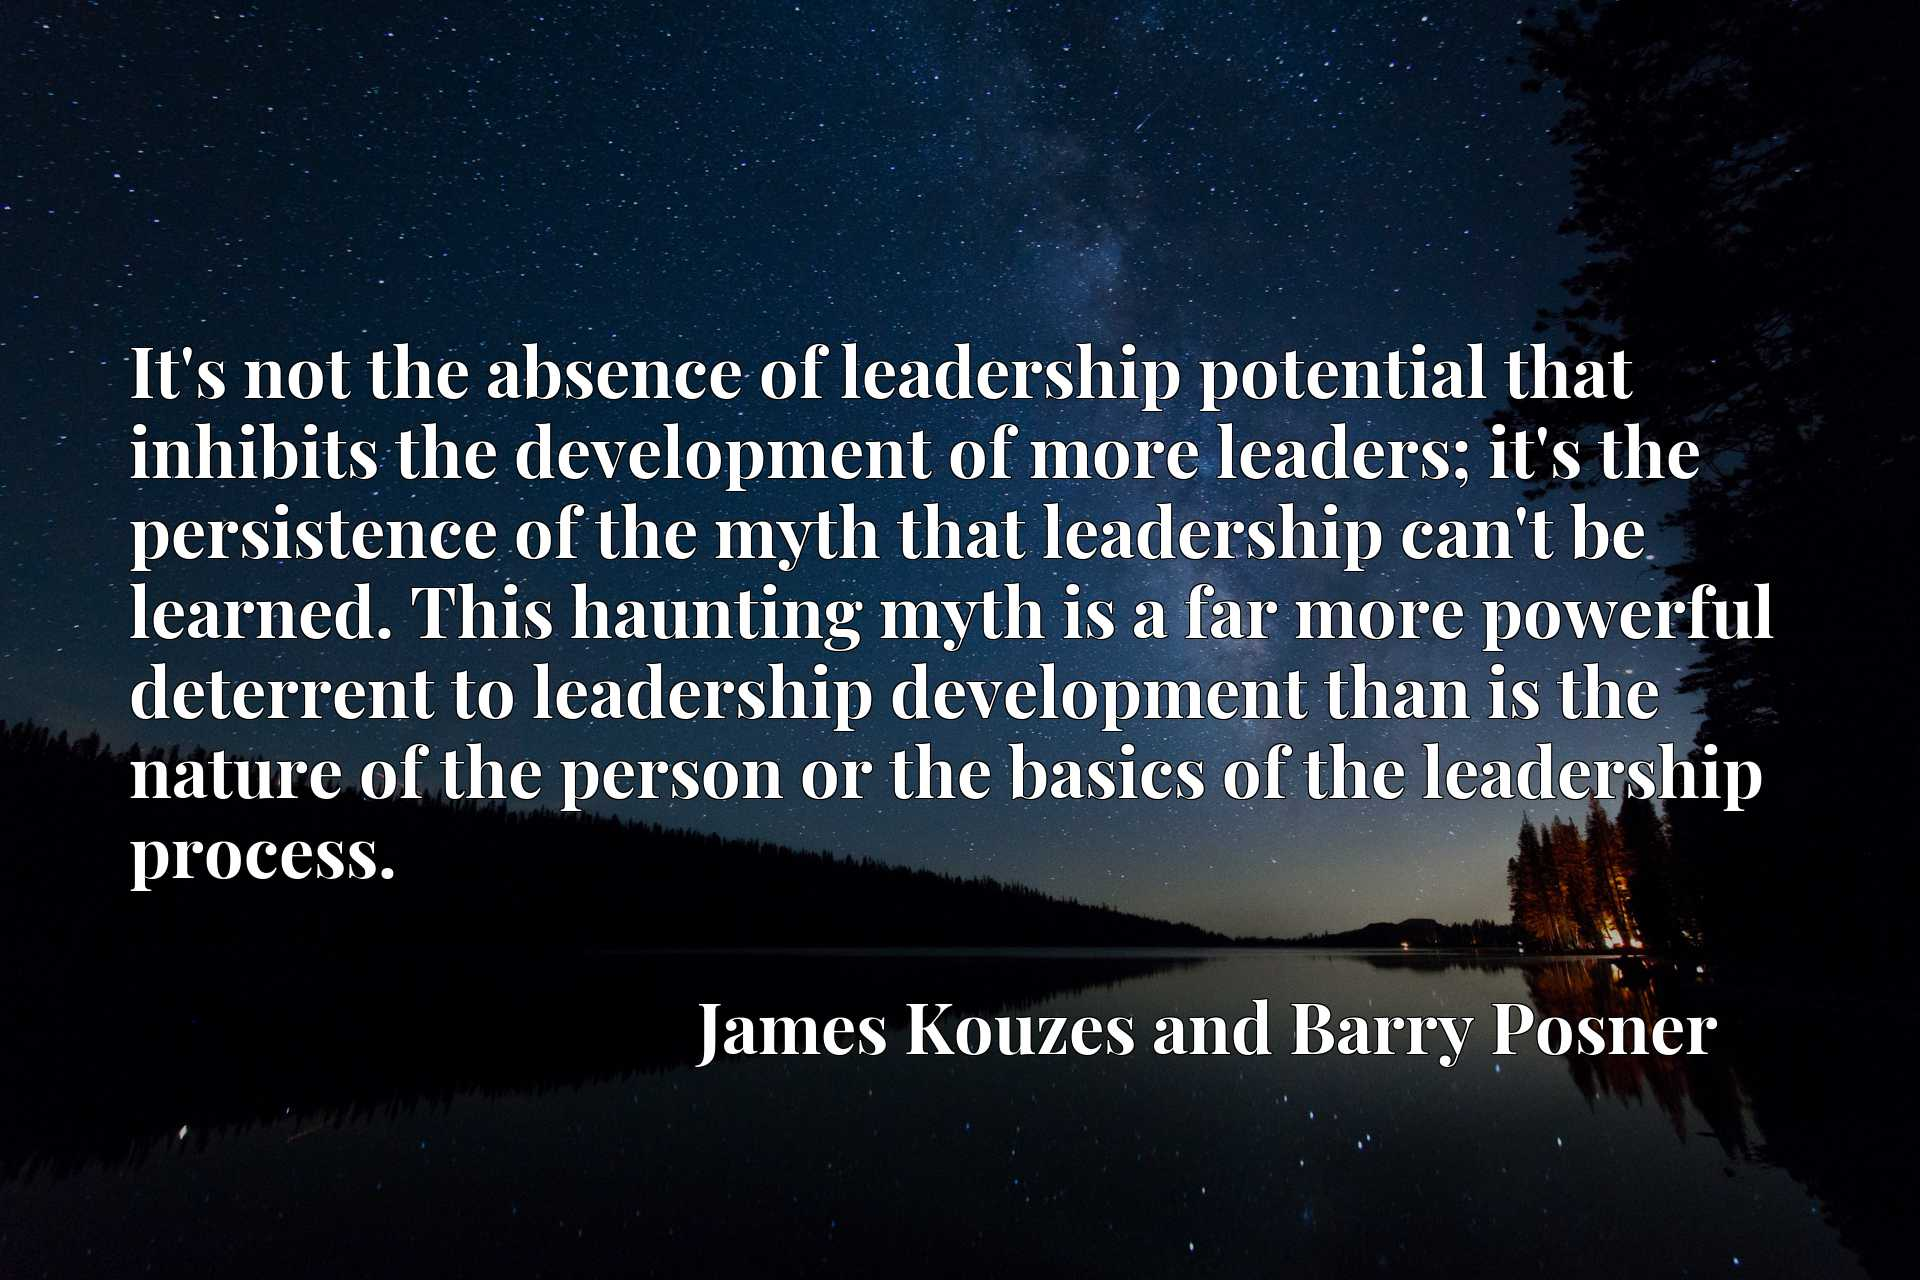 It's not the absence of leadership potential that inhibits the development of more leaders; it's the persistence of the myth that leadership can't be learned. This haunting myth is a far more powerful deterrent to leadership development than is the nature of the person or the basics of the leadership process.